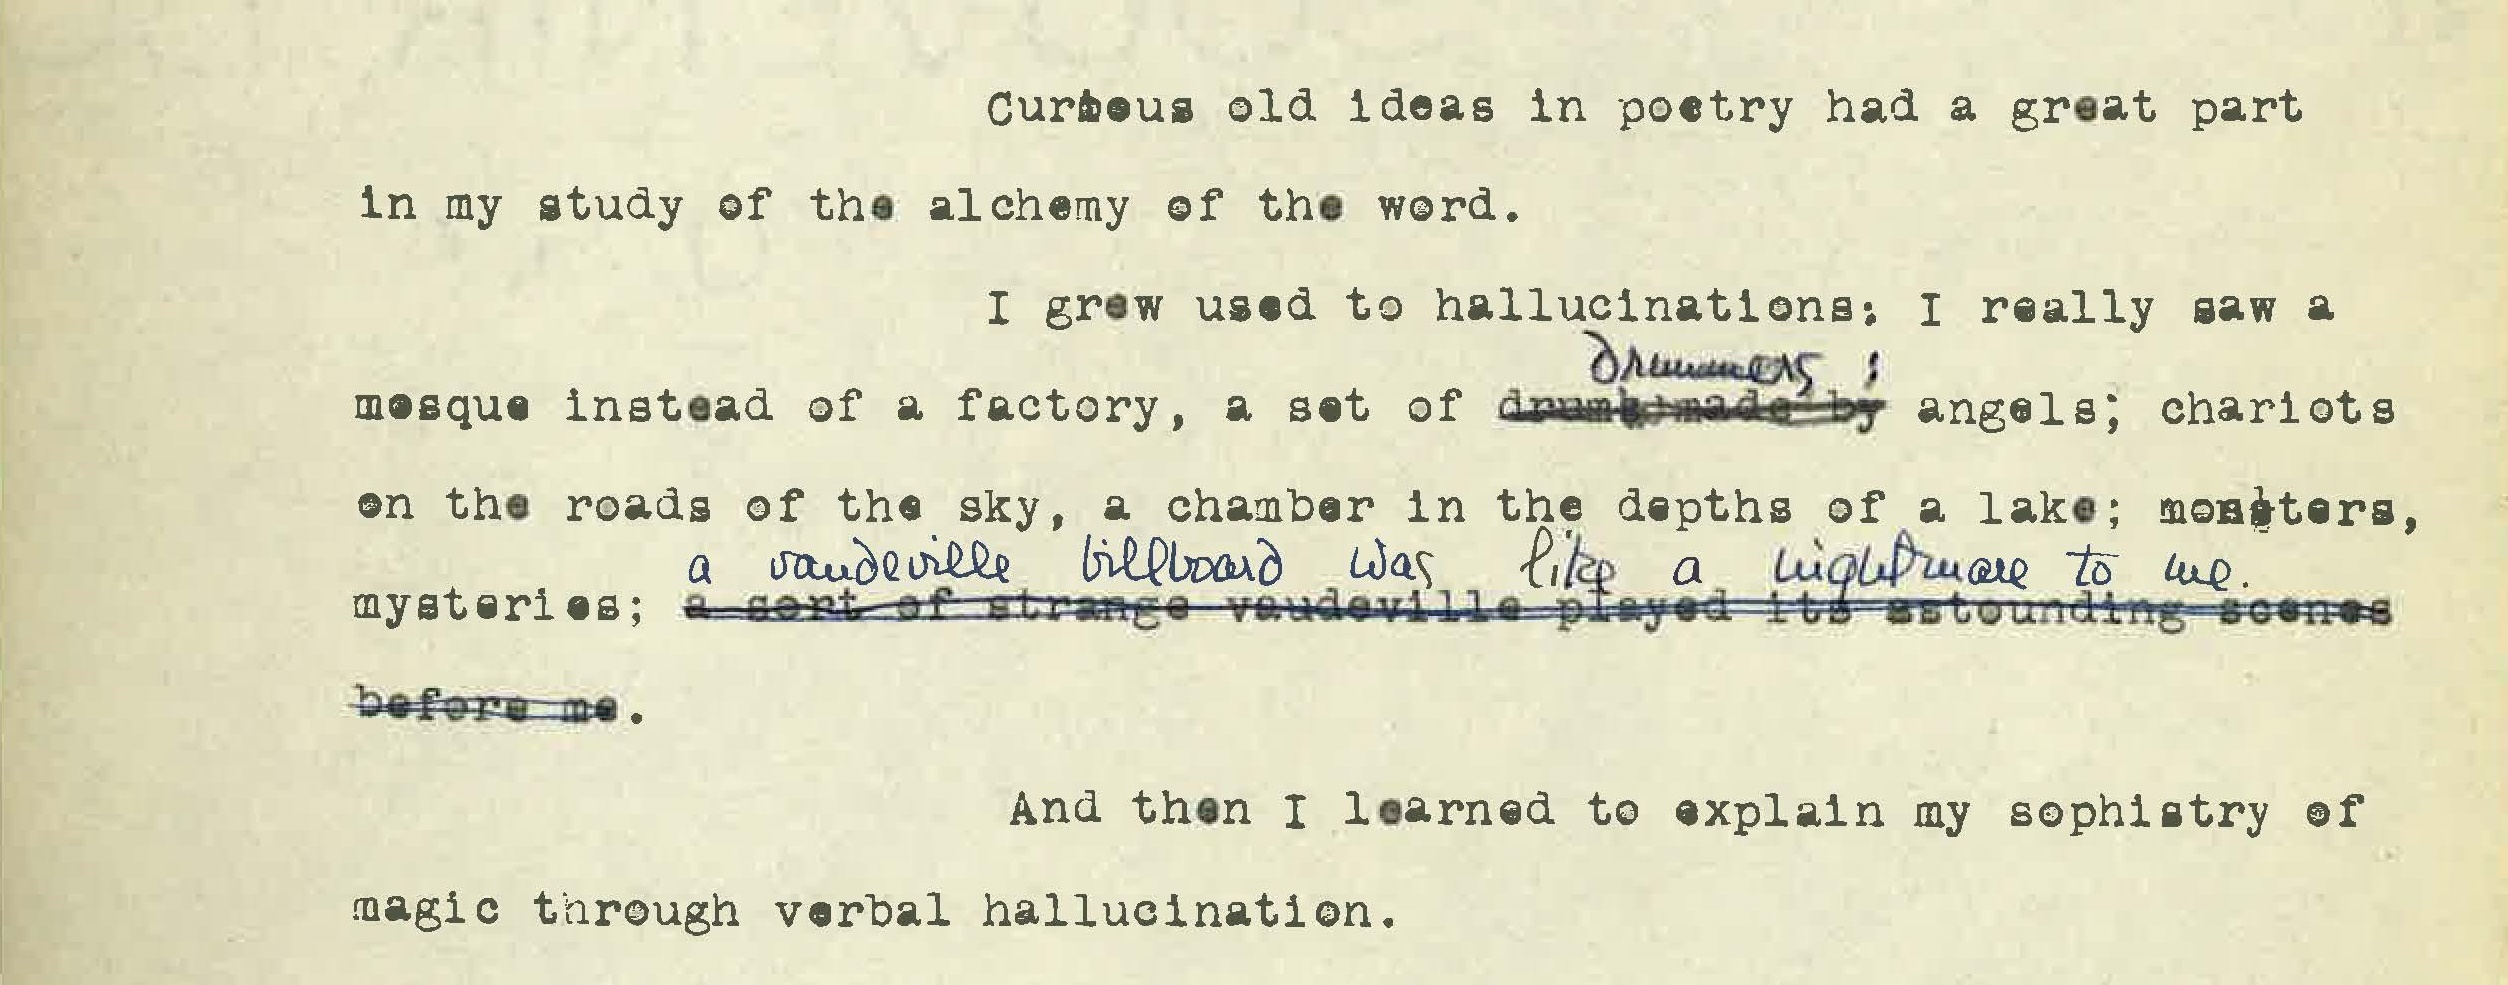 Typewritten text appears on a yellowed page with portions of text crossed out and handwritten over. Among the text, the following appears typed and crossed out: 'a sort of strange vaudeville played its astounding scenes before me' and handwritten above it, 'a vaudeville billboard was like a nightmare to me.'